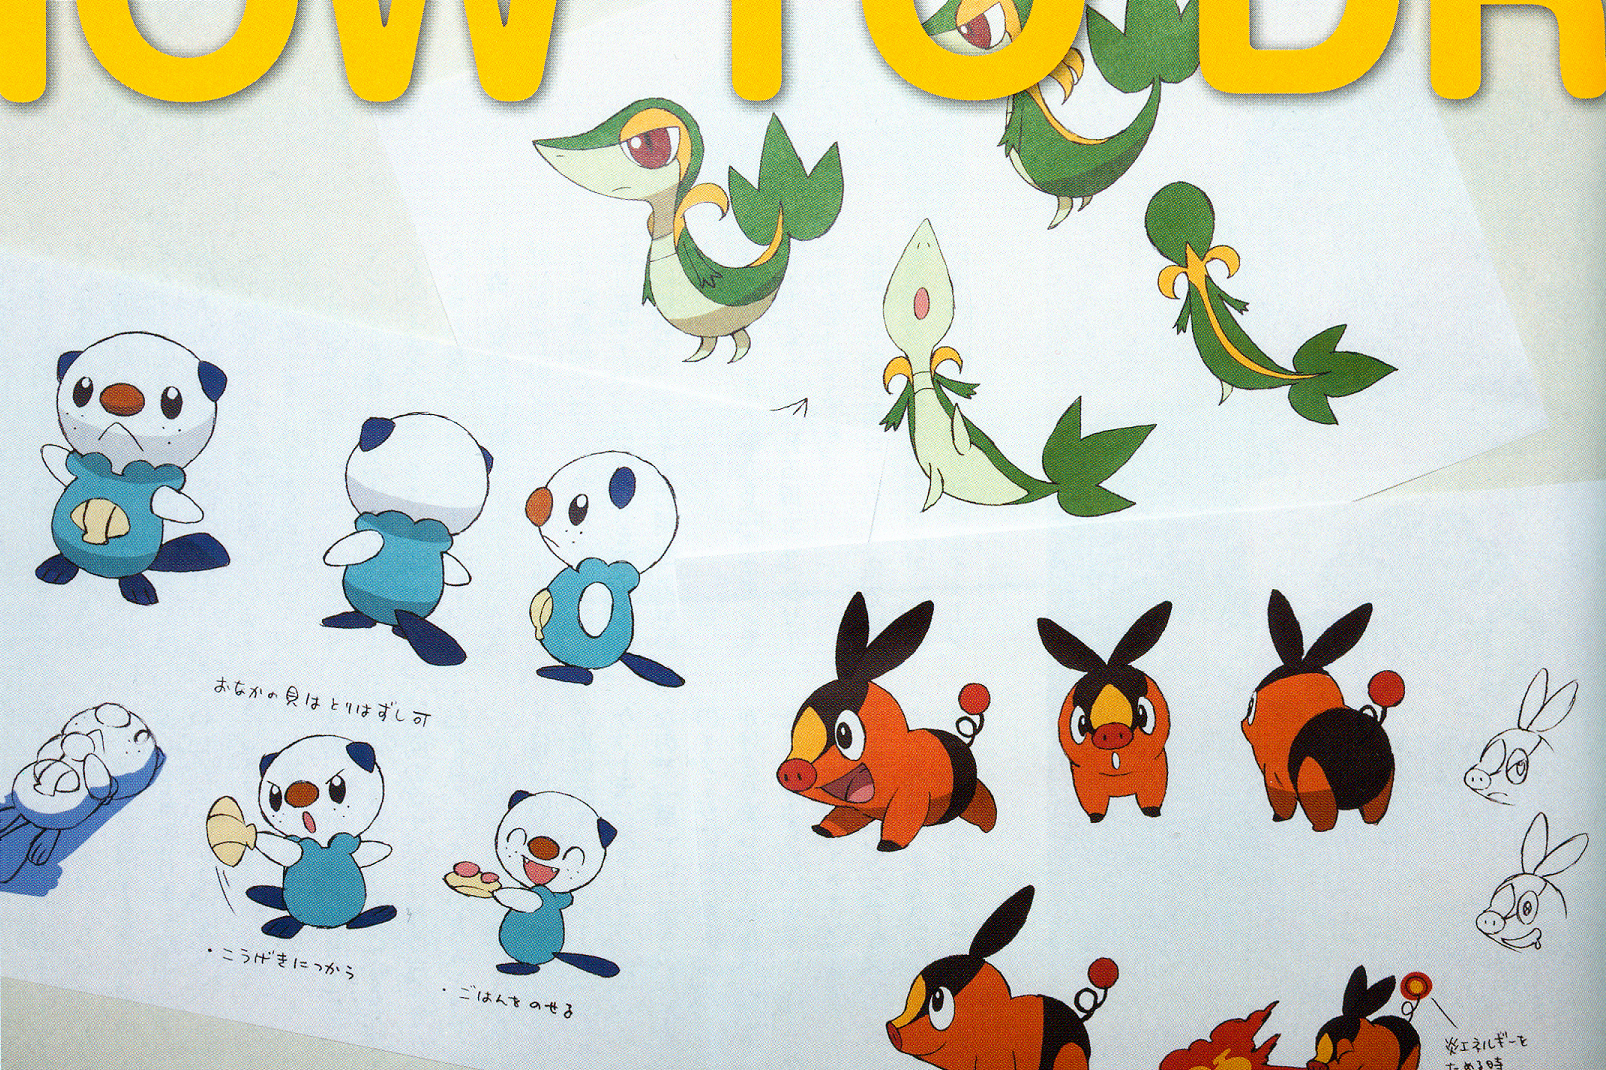 production artwork from the pokemon anime and games